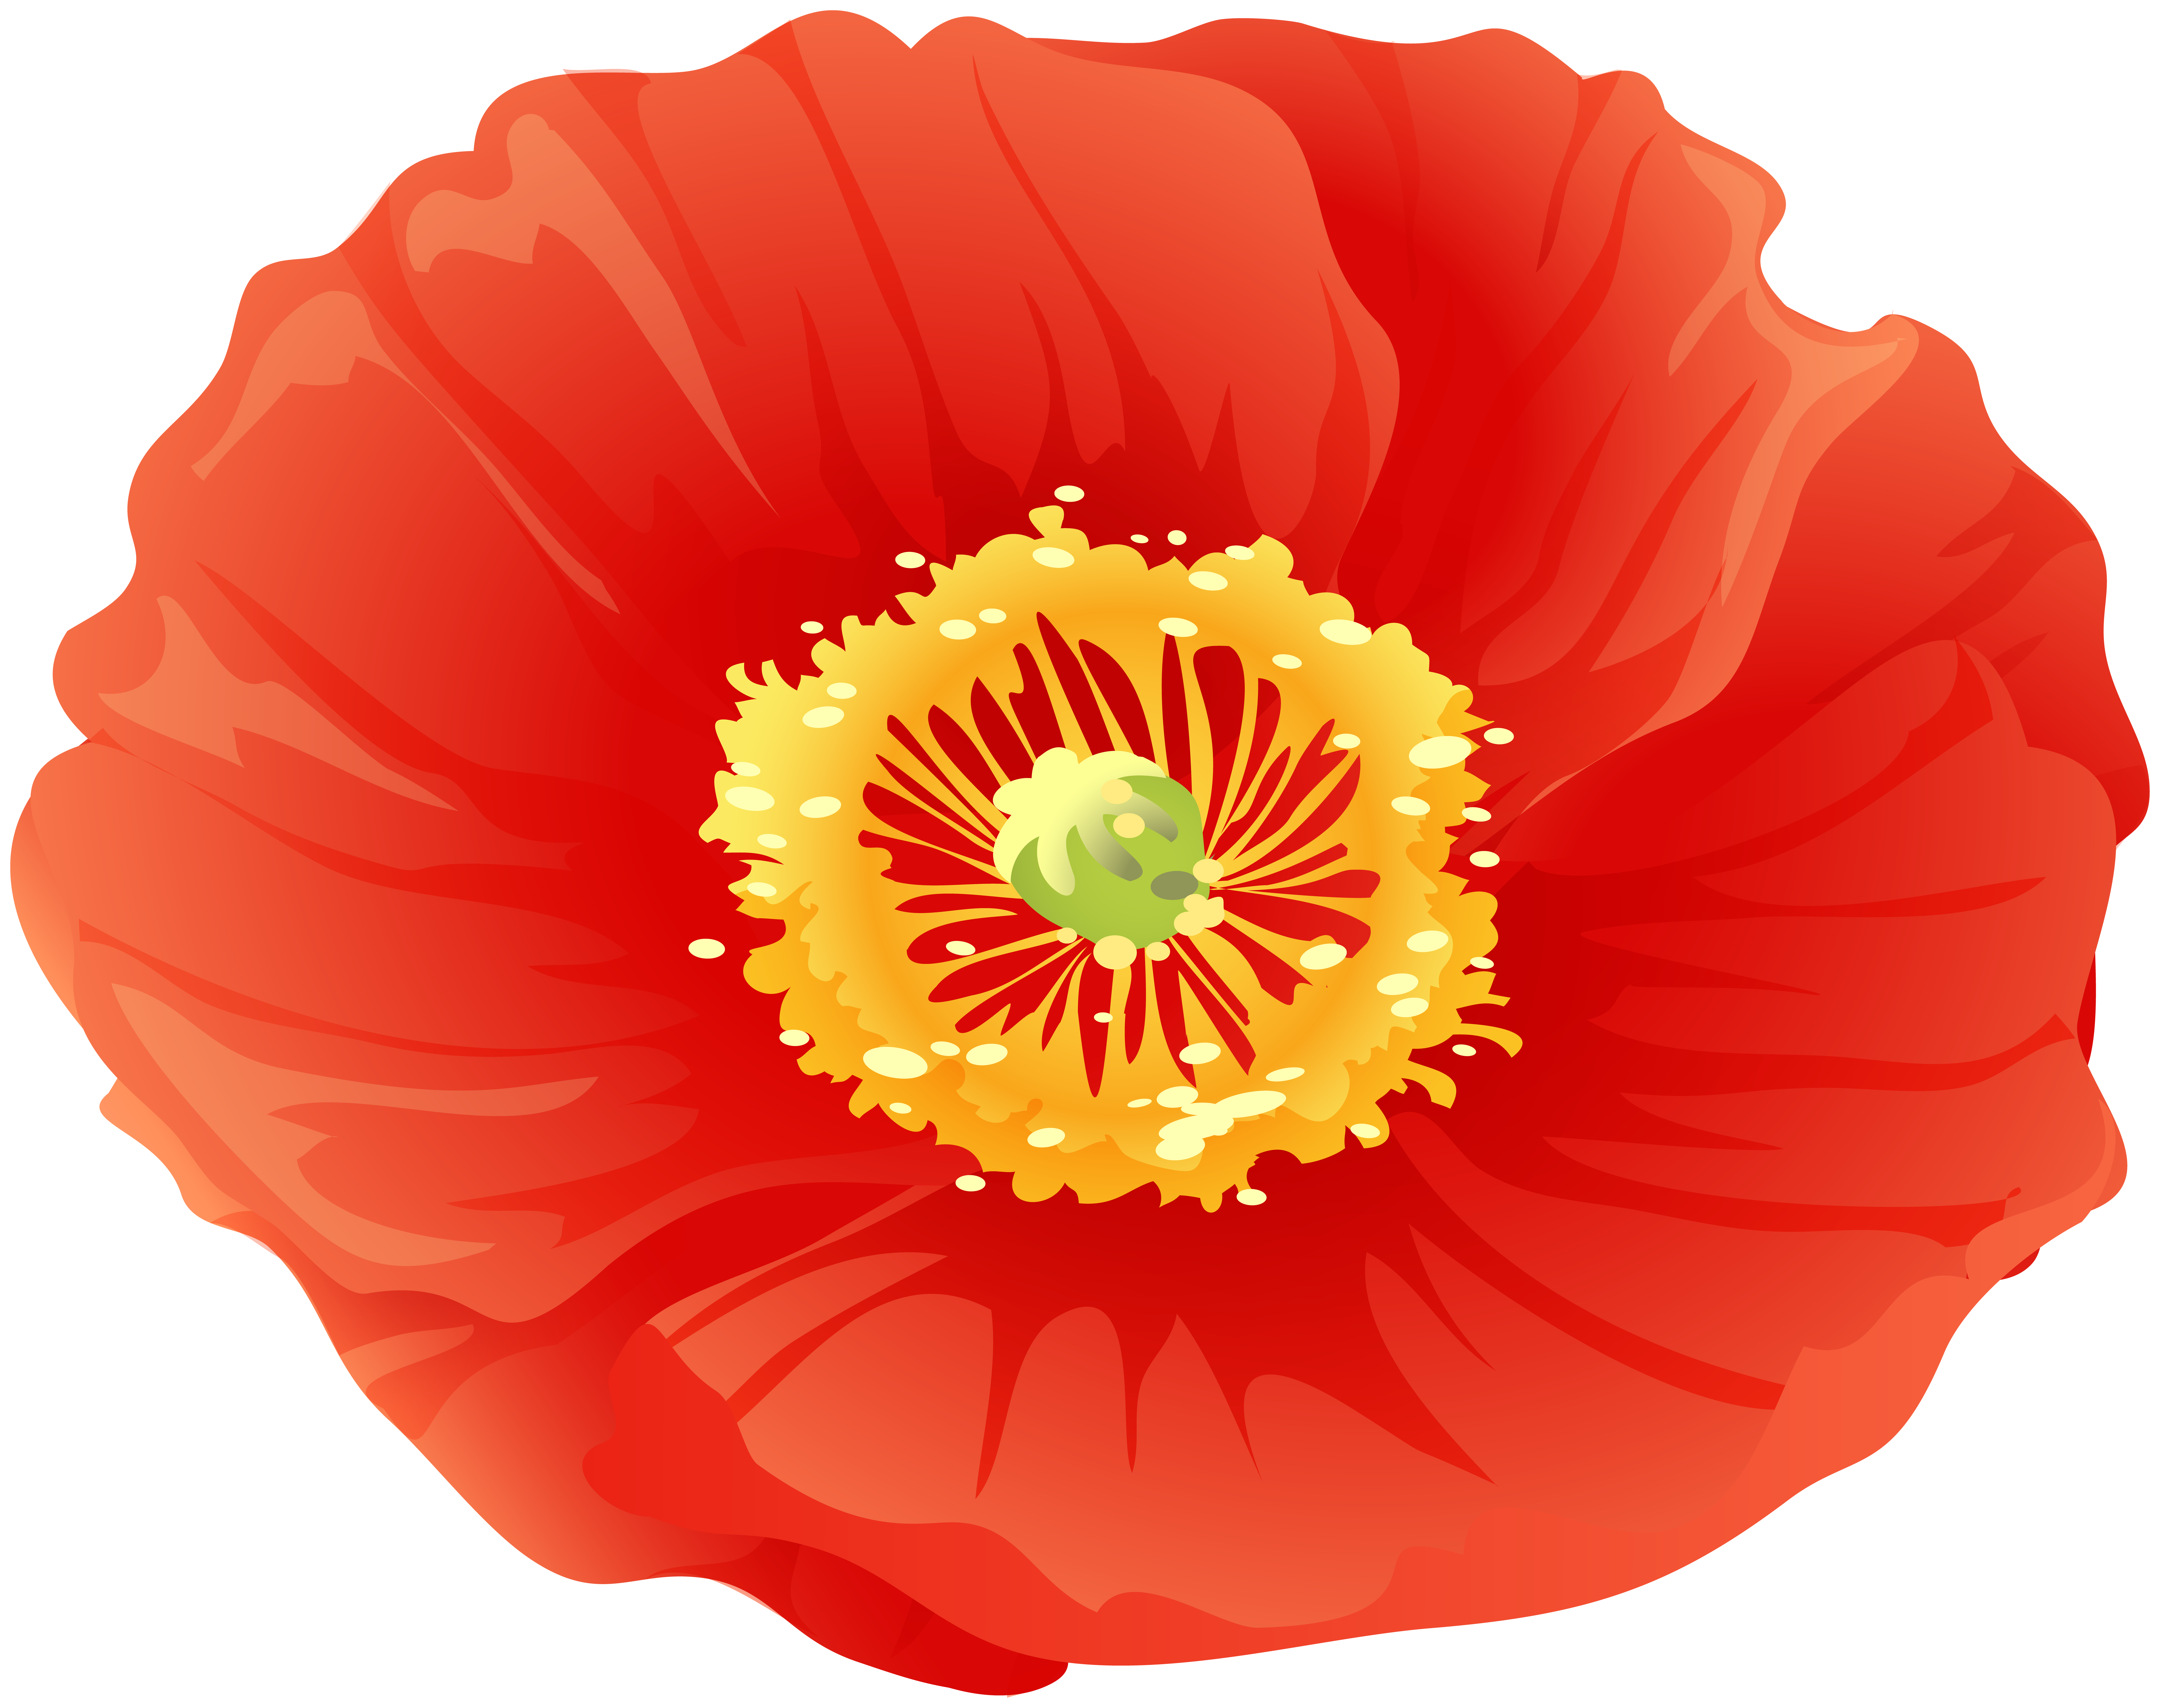 Free poppy flower clipart clipart royalty free library Red Poppy Flower Clip Art | Gallery Yopriceville - High-Quality ... clipart royalty free library